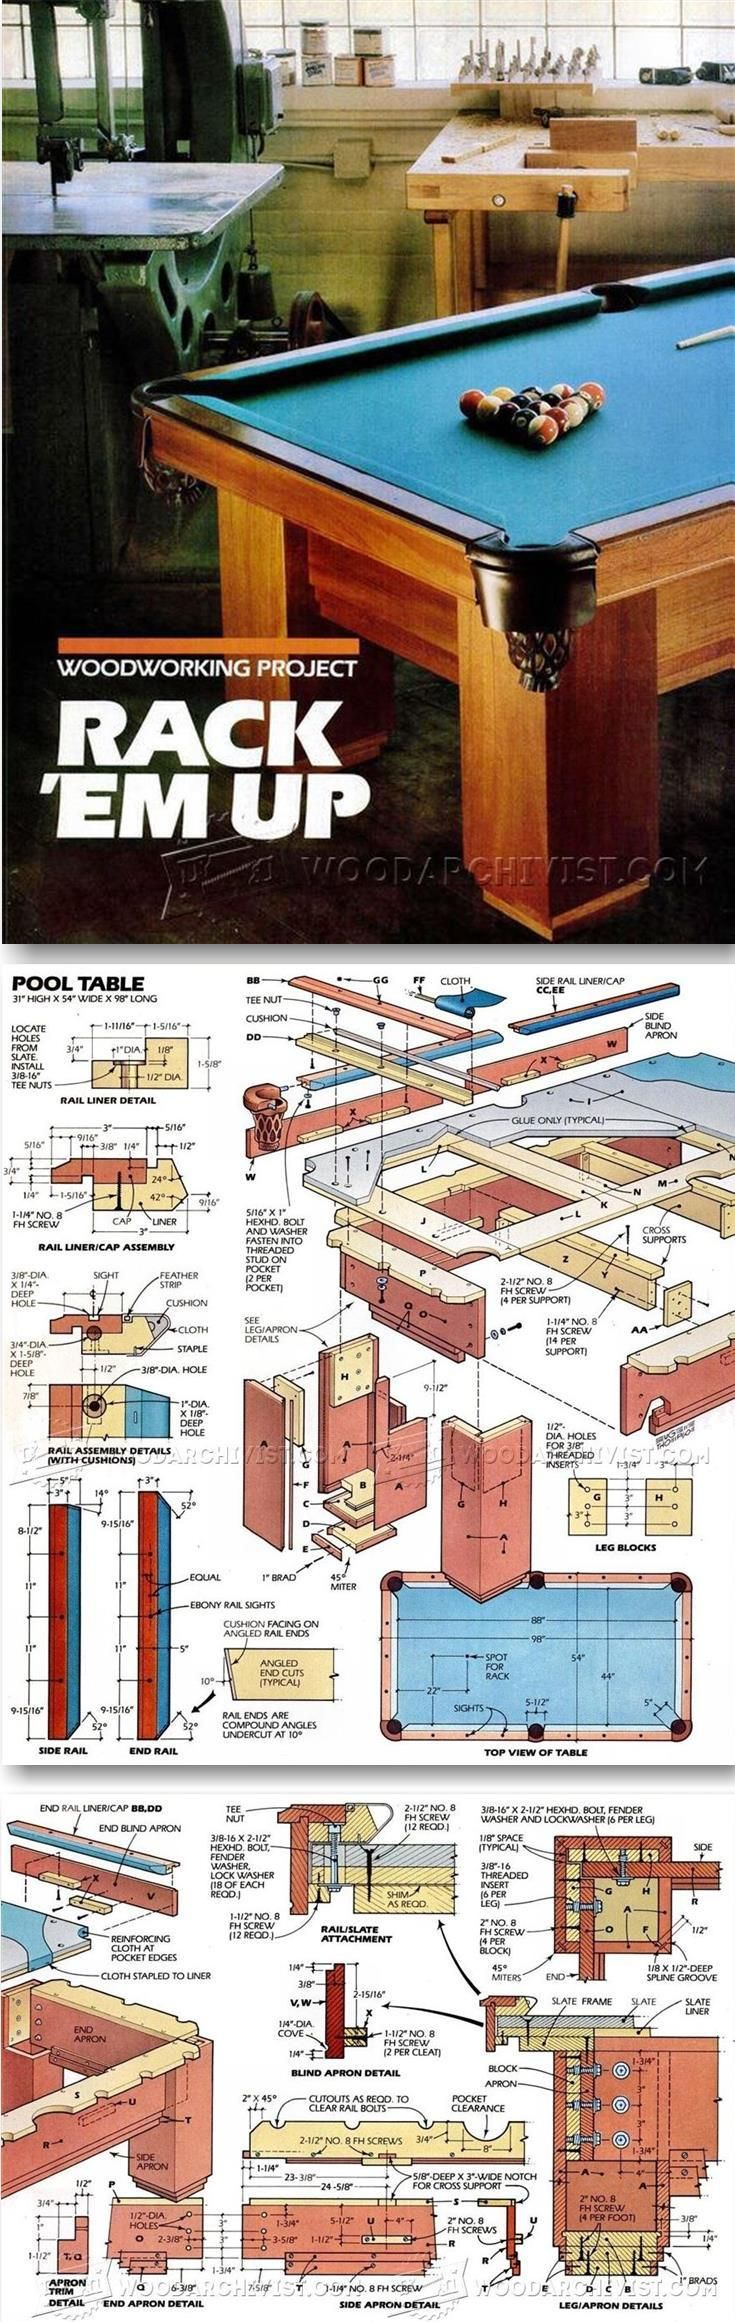 Build your own pool table plans - Pool Table Plans Woodworking Plans And Projects Woodarchivist Com